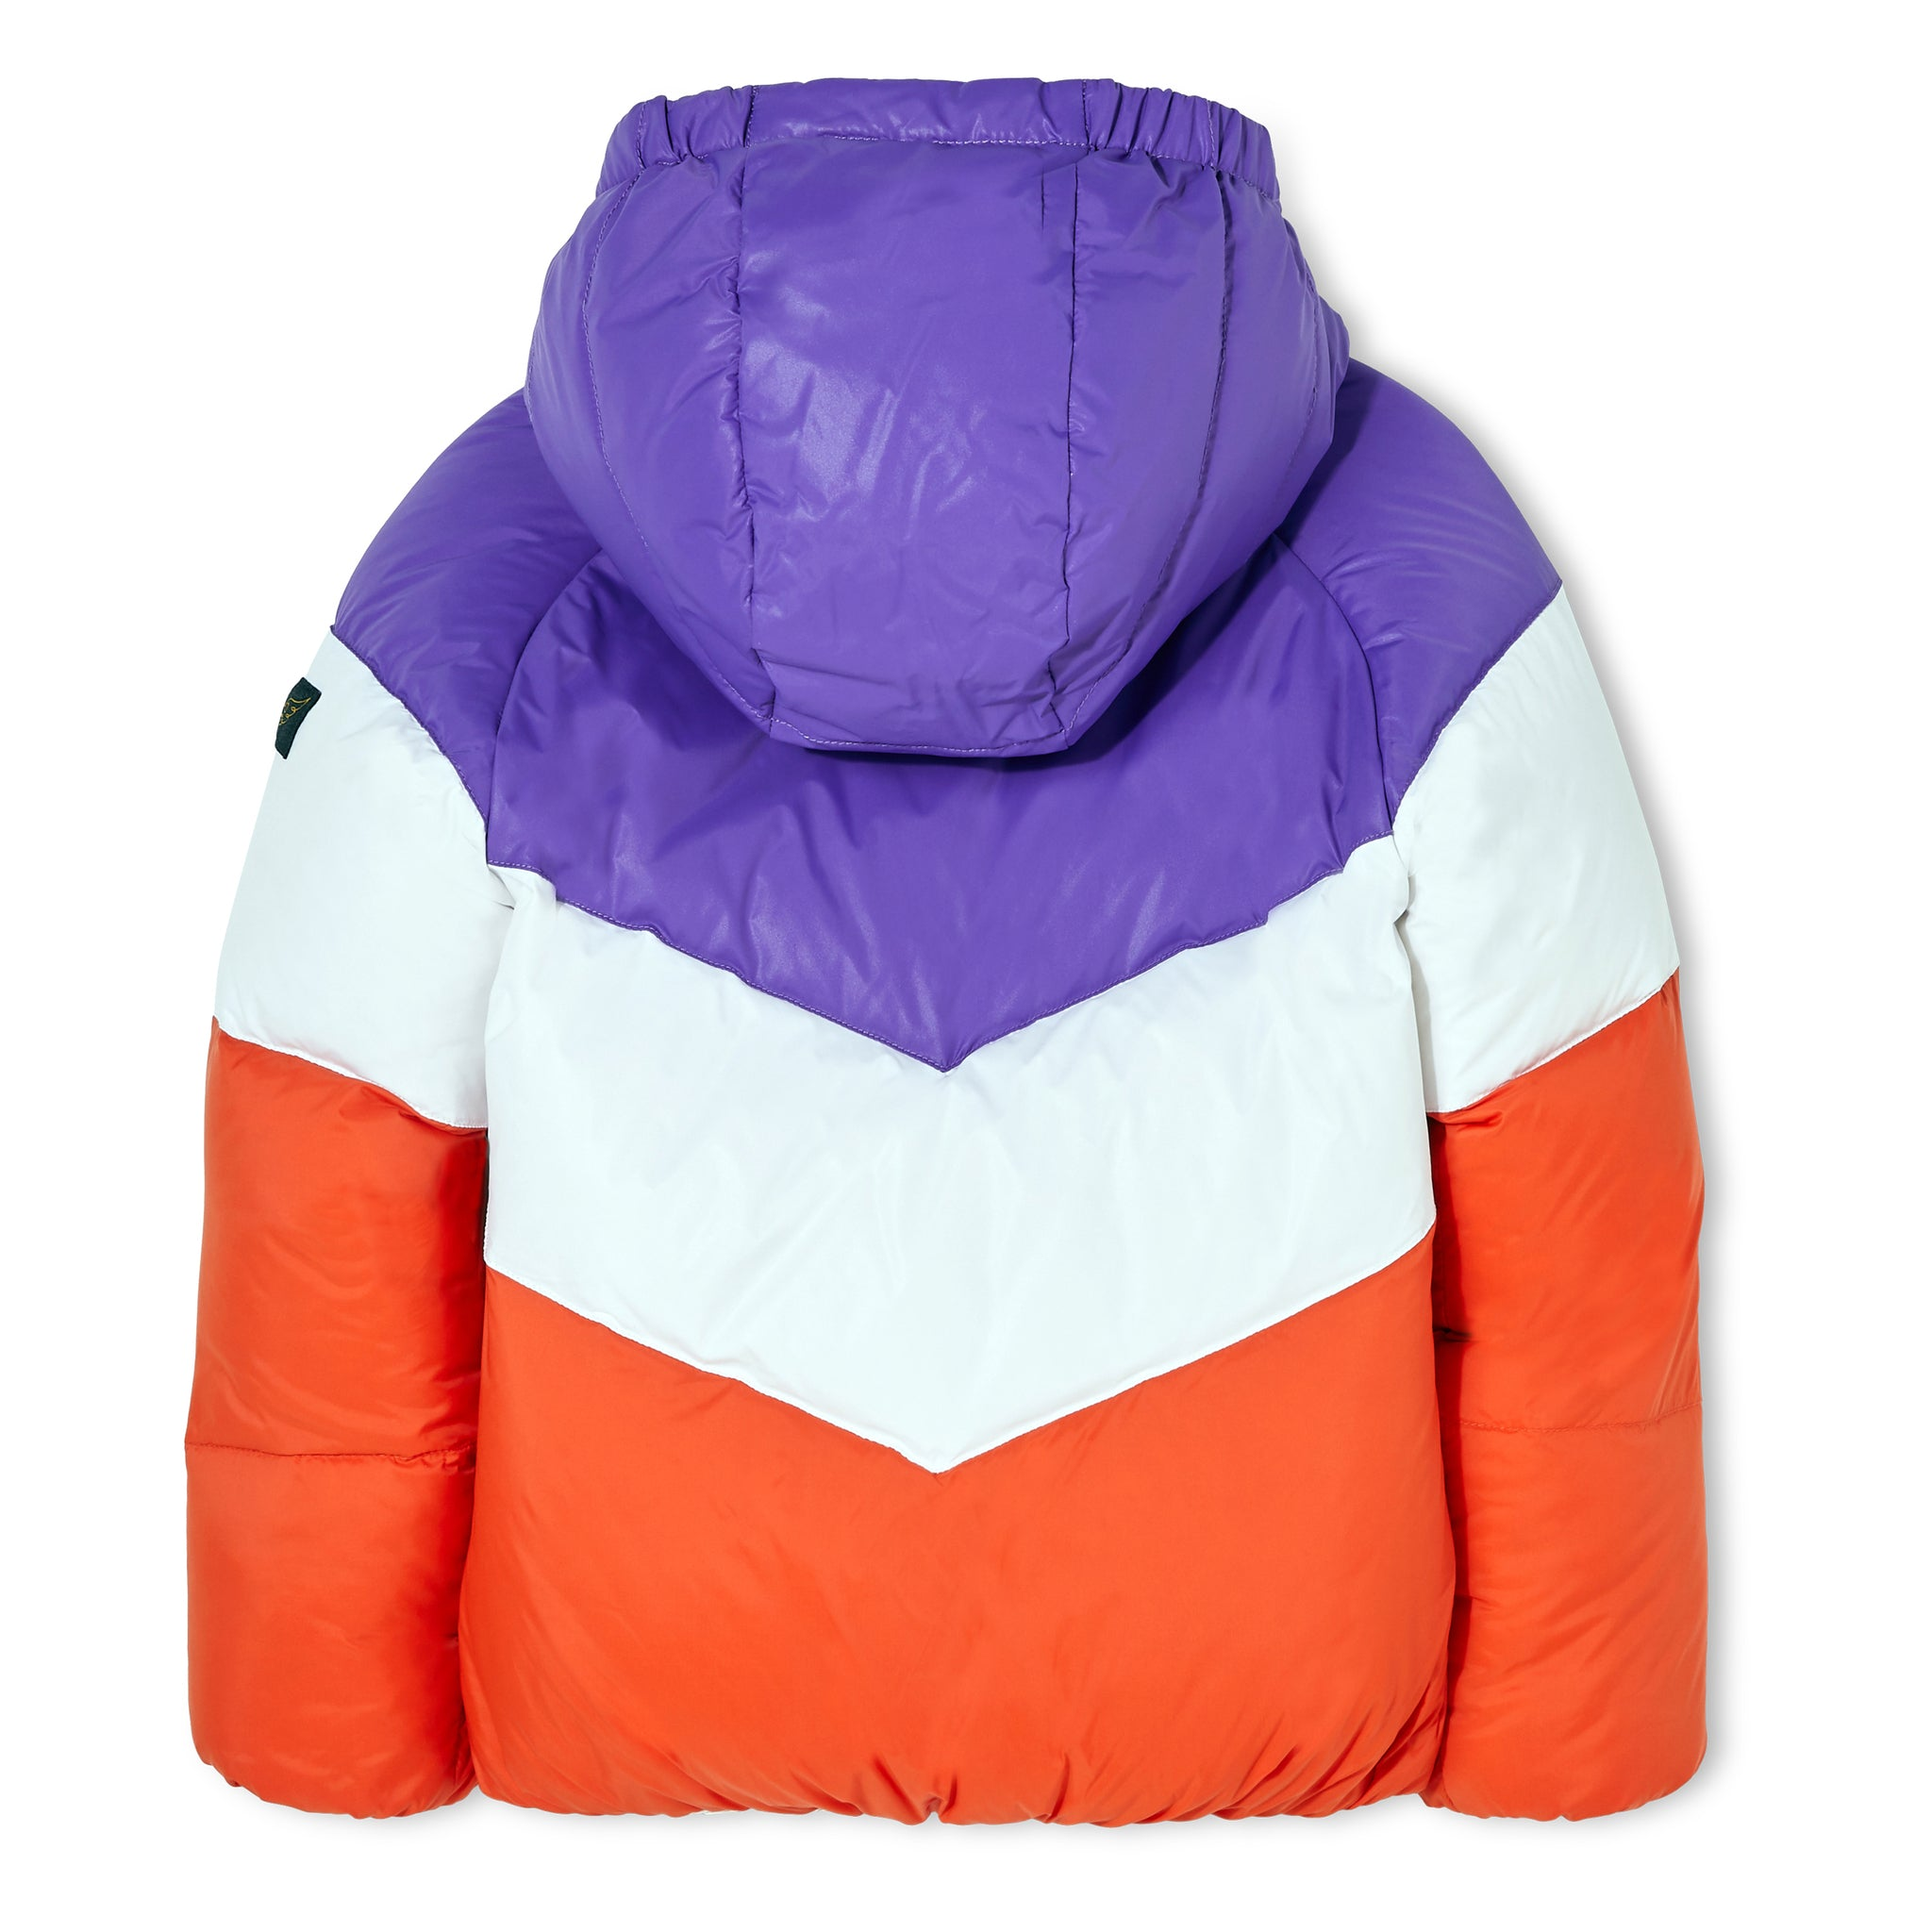 SNOWDANCE Off White - Reversible Down Jacket 3